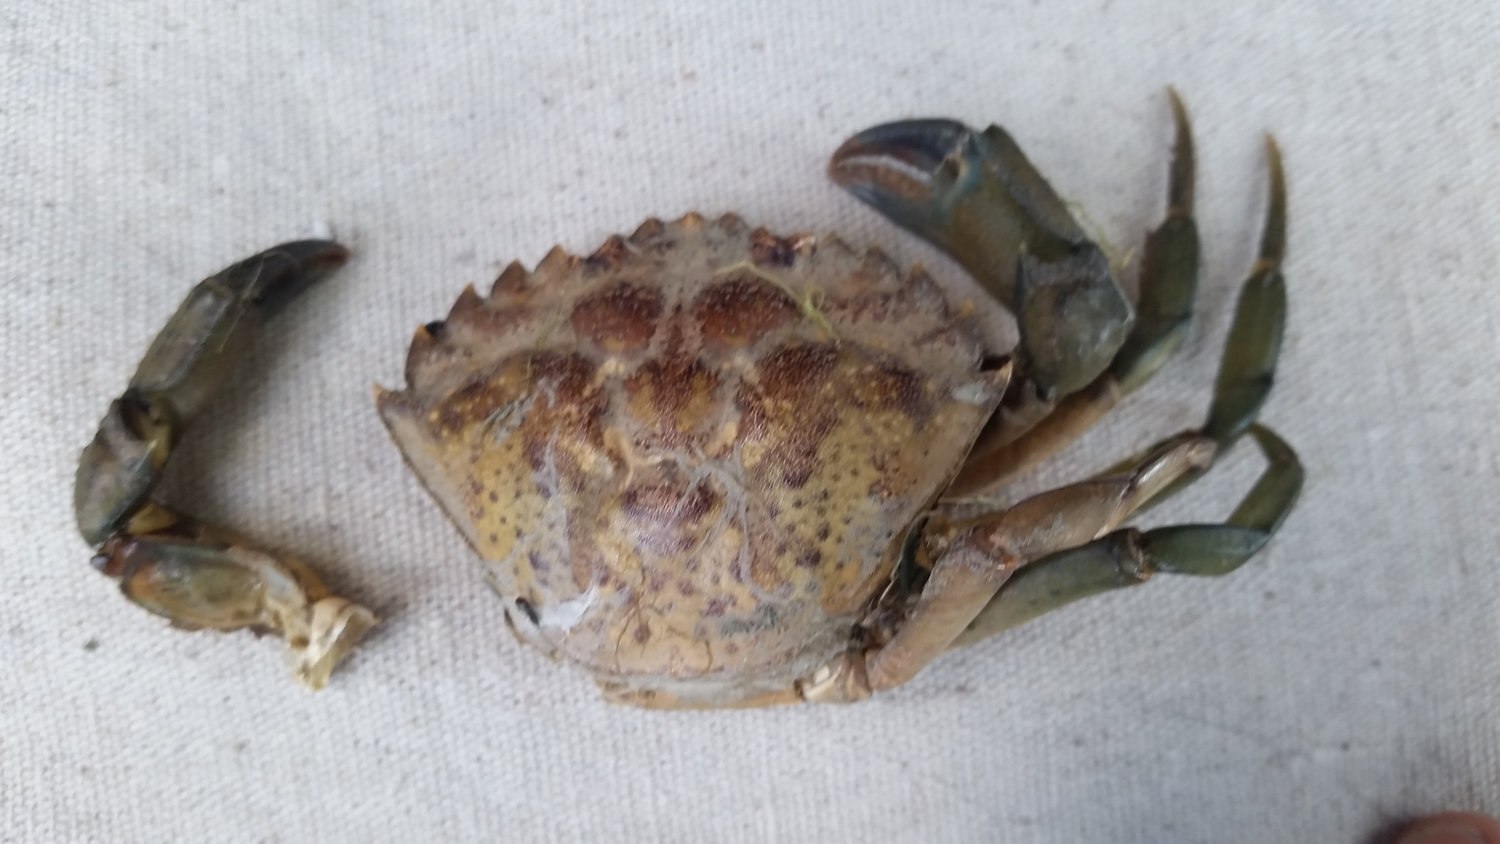 One of two European green crab shells that were recently found in Drayton Harbor.